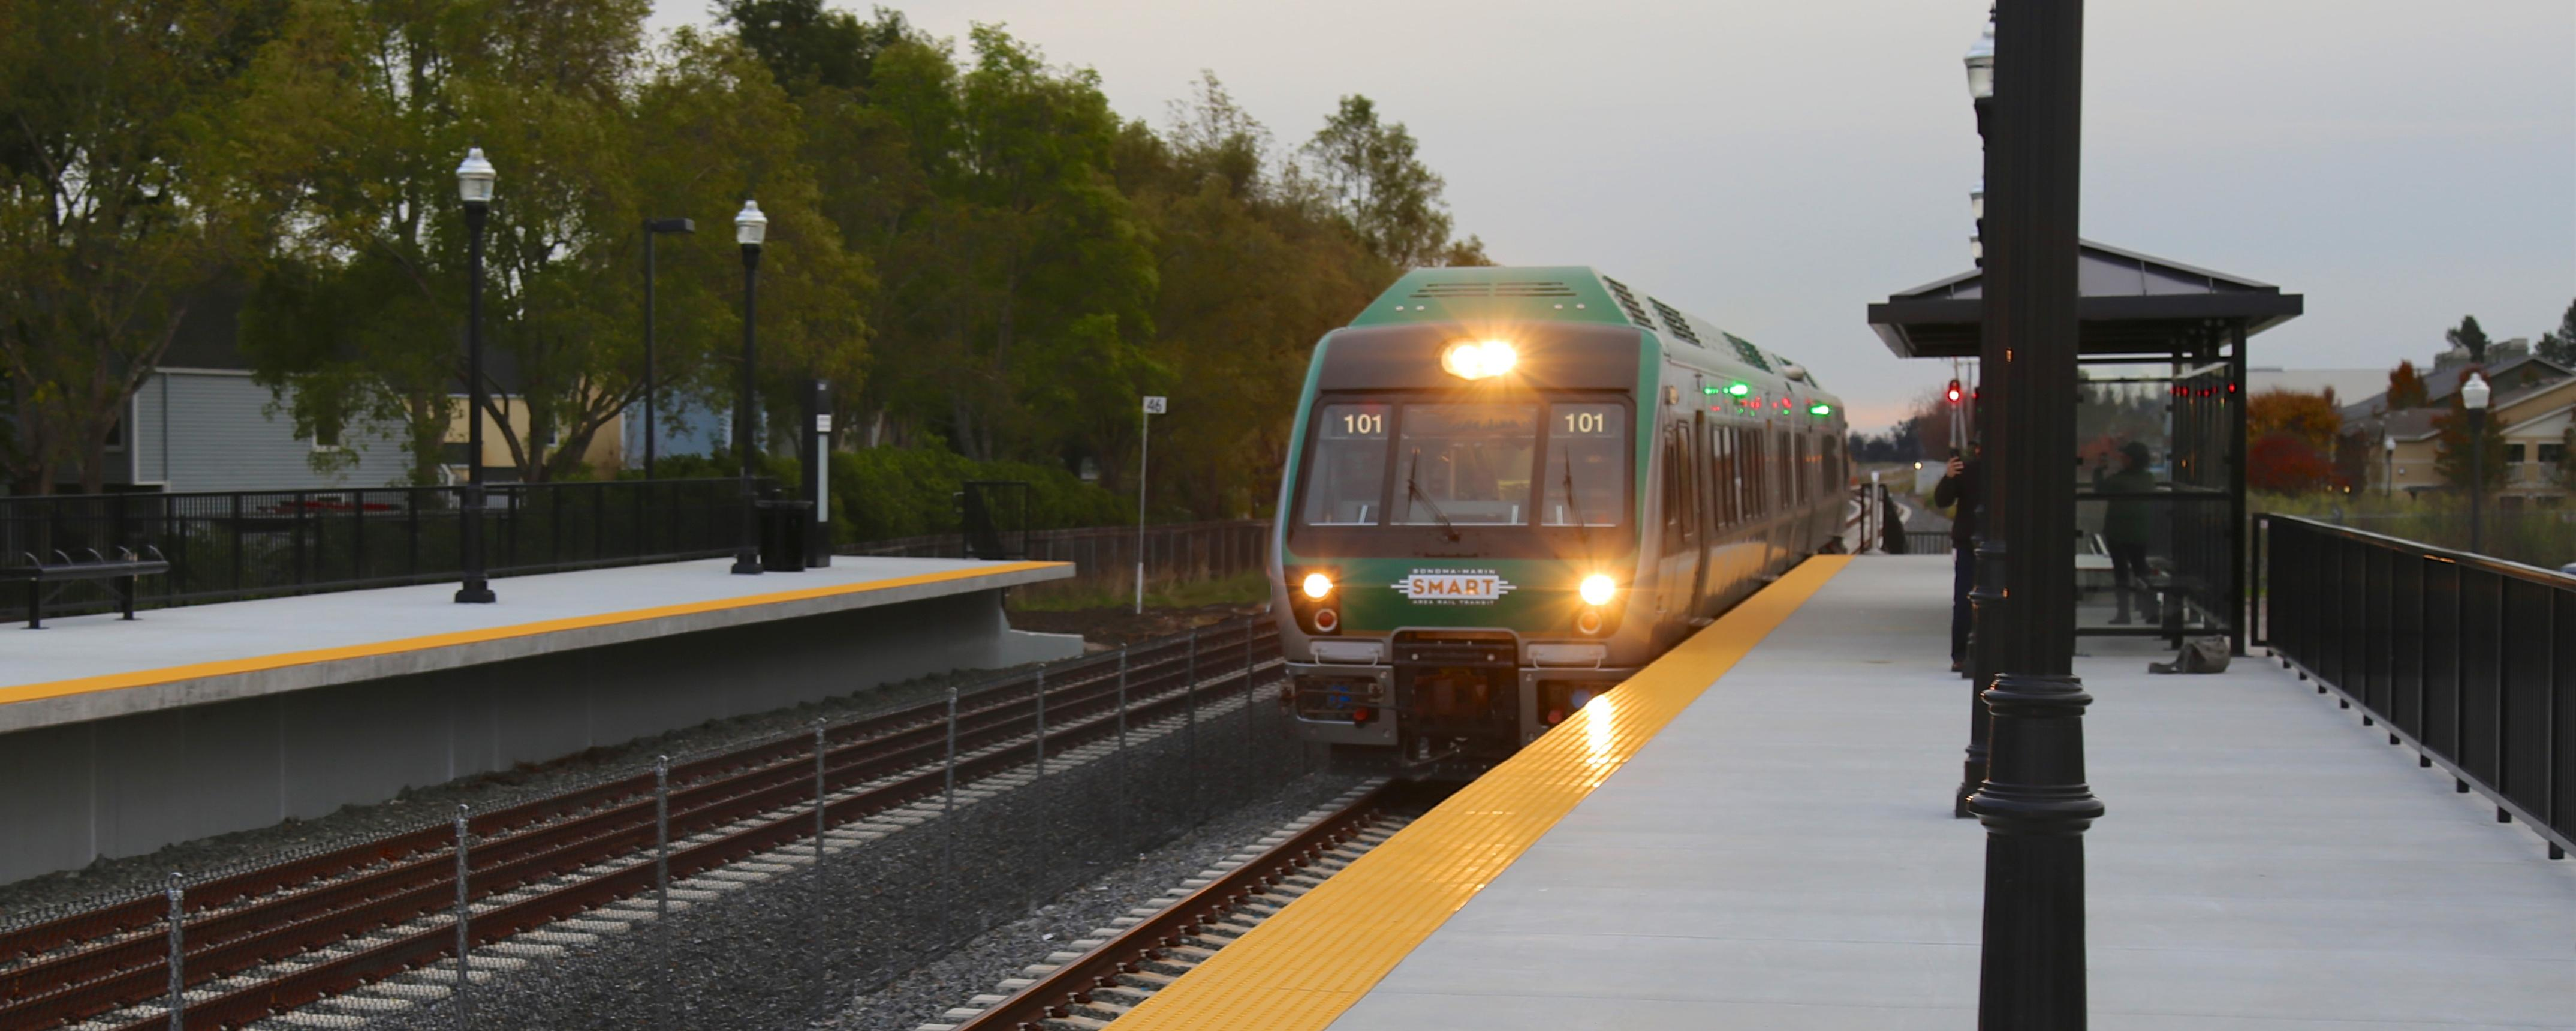 SMART train arriving at station